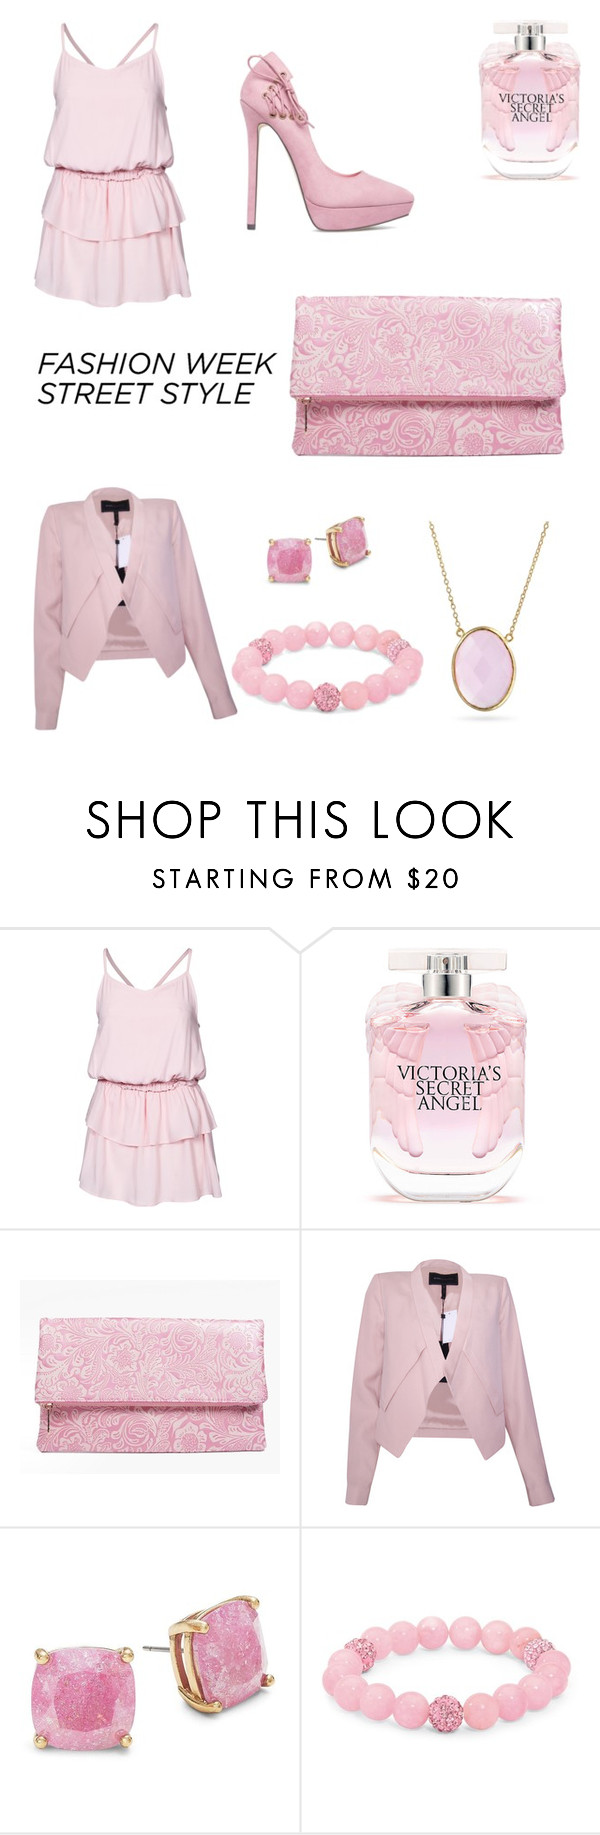 """""""Untitled #3"""" by skiconn ❤ liked on Polyvore featuring Rut&Circle, ShoeDazzle, Victoria's Secret, Boohoo, BCBGMAXAZRIA, Kate Spade, Palm Beach Jewelry and Bling Jewelry"""